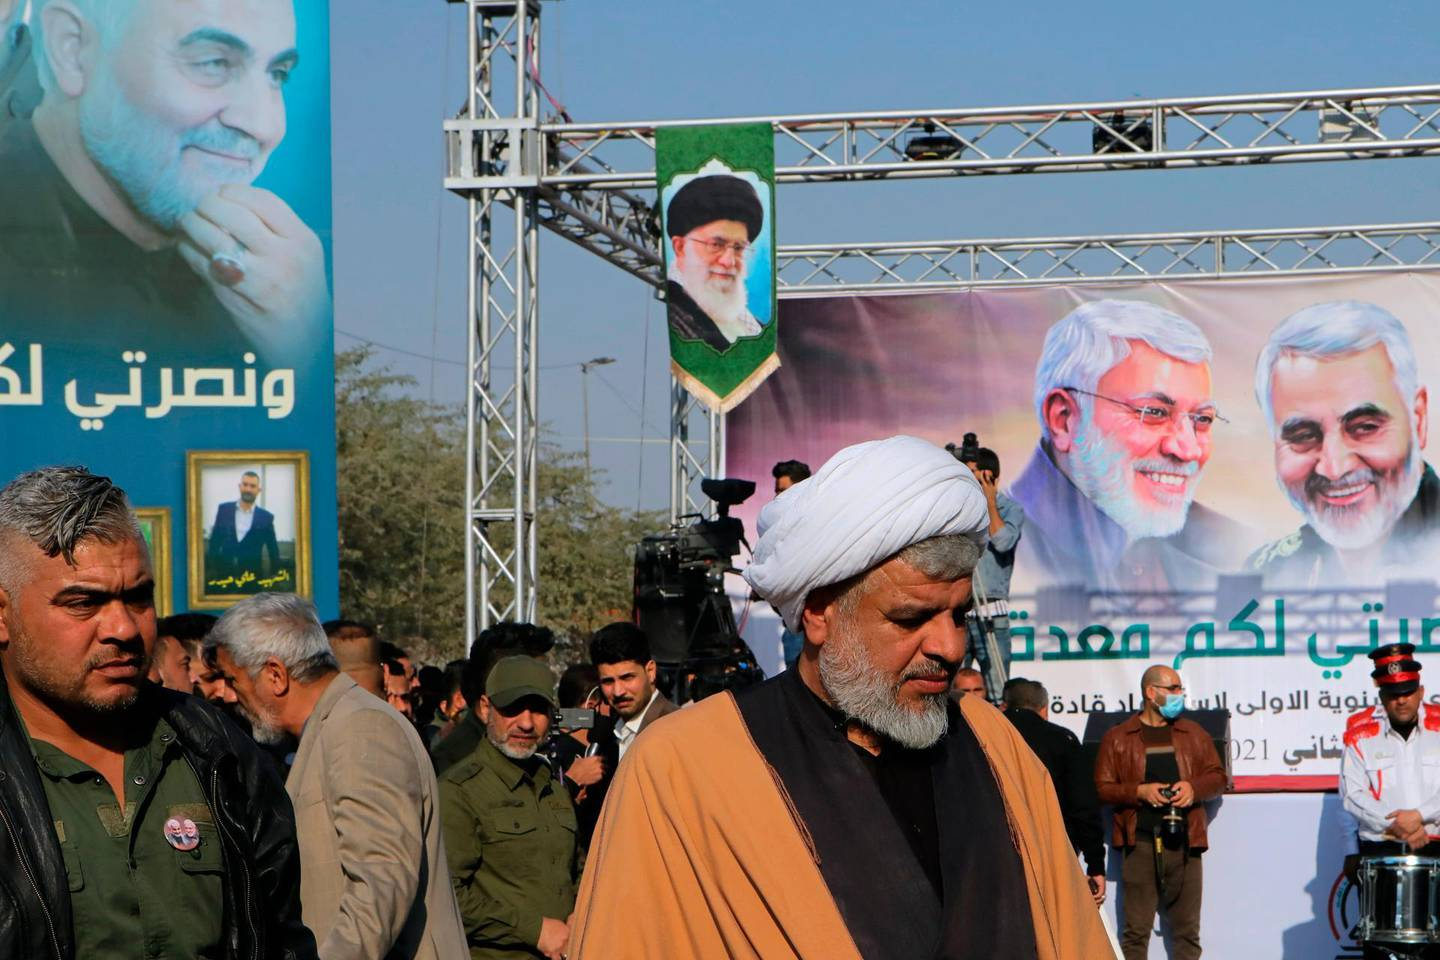 Supporters of the Popular Mobilization Forces hold a poster of Supreme Leader Ayatollah Ali Khamenei, center, and Abu Mahdi al-Muhandis, deputy commander of the Popular Mobilization Forces and General Qassem Soleimani, head of Iran's Quds force during a rally to commemorate the anniversary of the killing of Soleimanil and al-Muhandis in a U.S. drone strike in Basra, Iraq, Friday, Jan. 8, 2021. (AP Photo/Nabil al-Jurani)